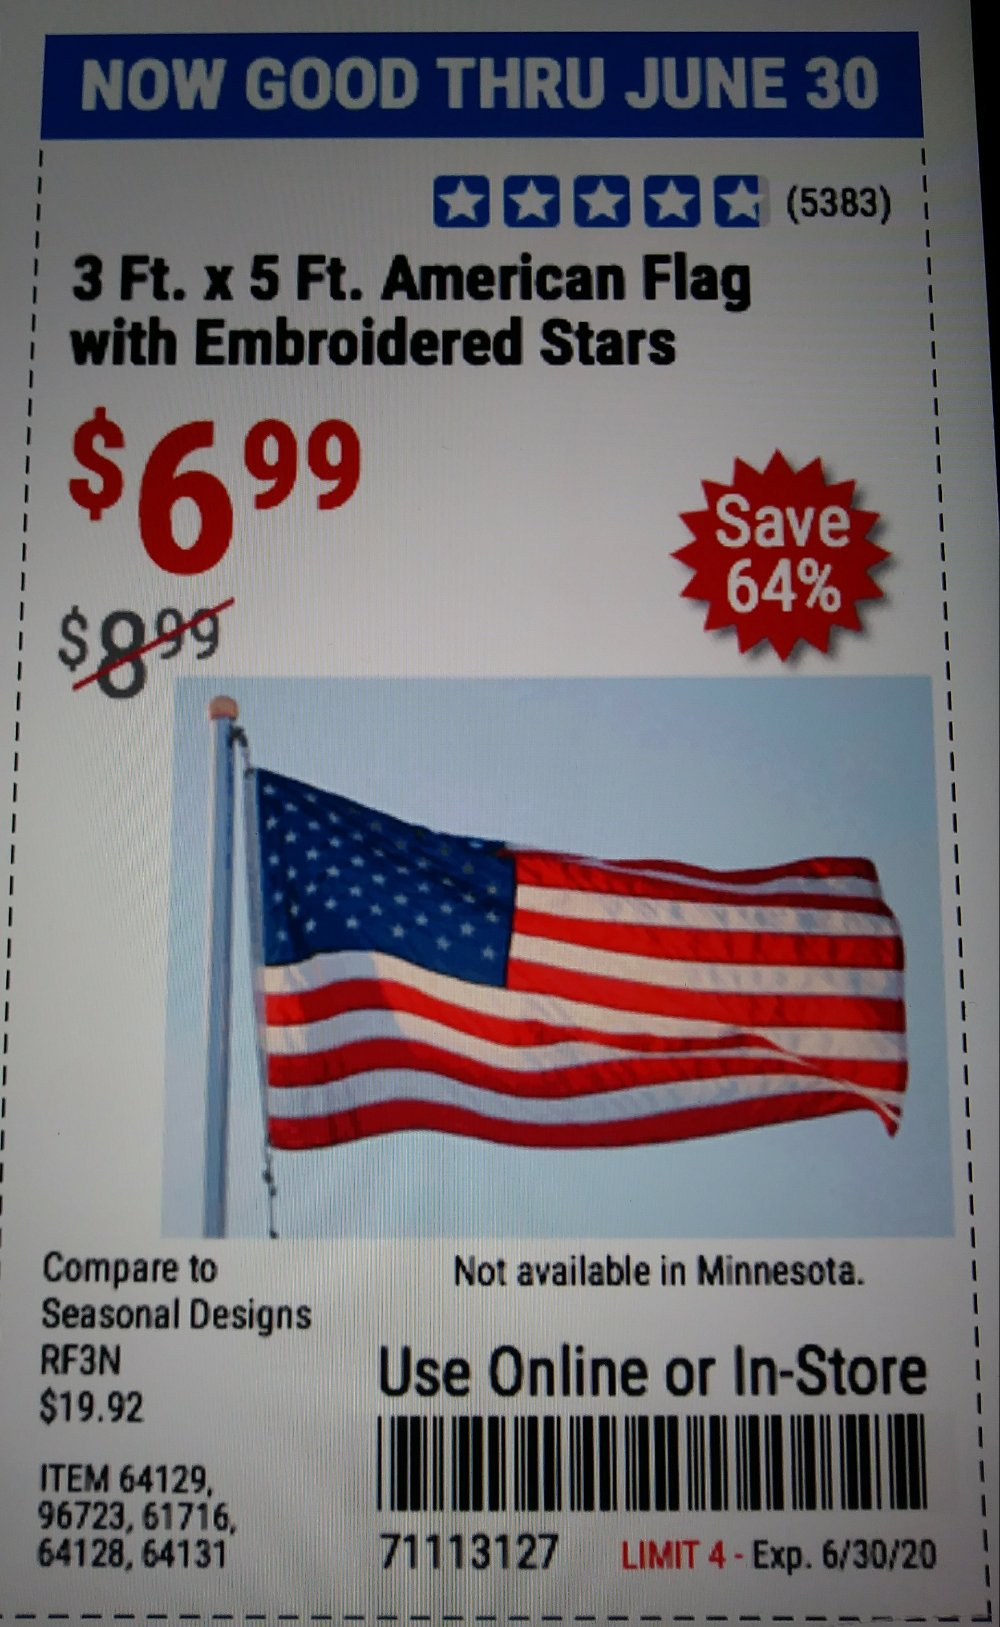 Harbor Freight Coupon, HF Coupons - 3×5 American Flag